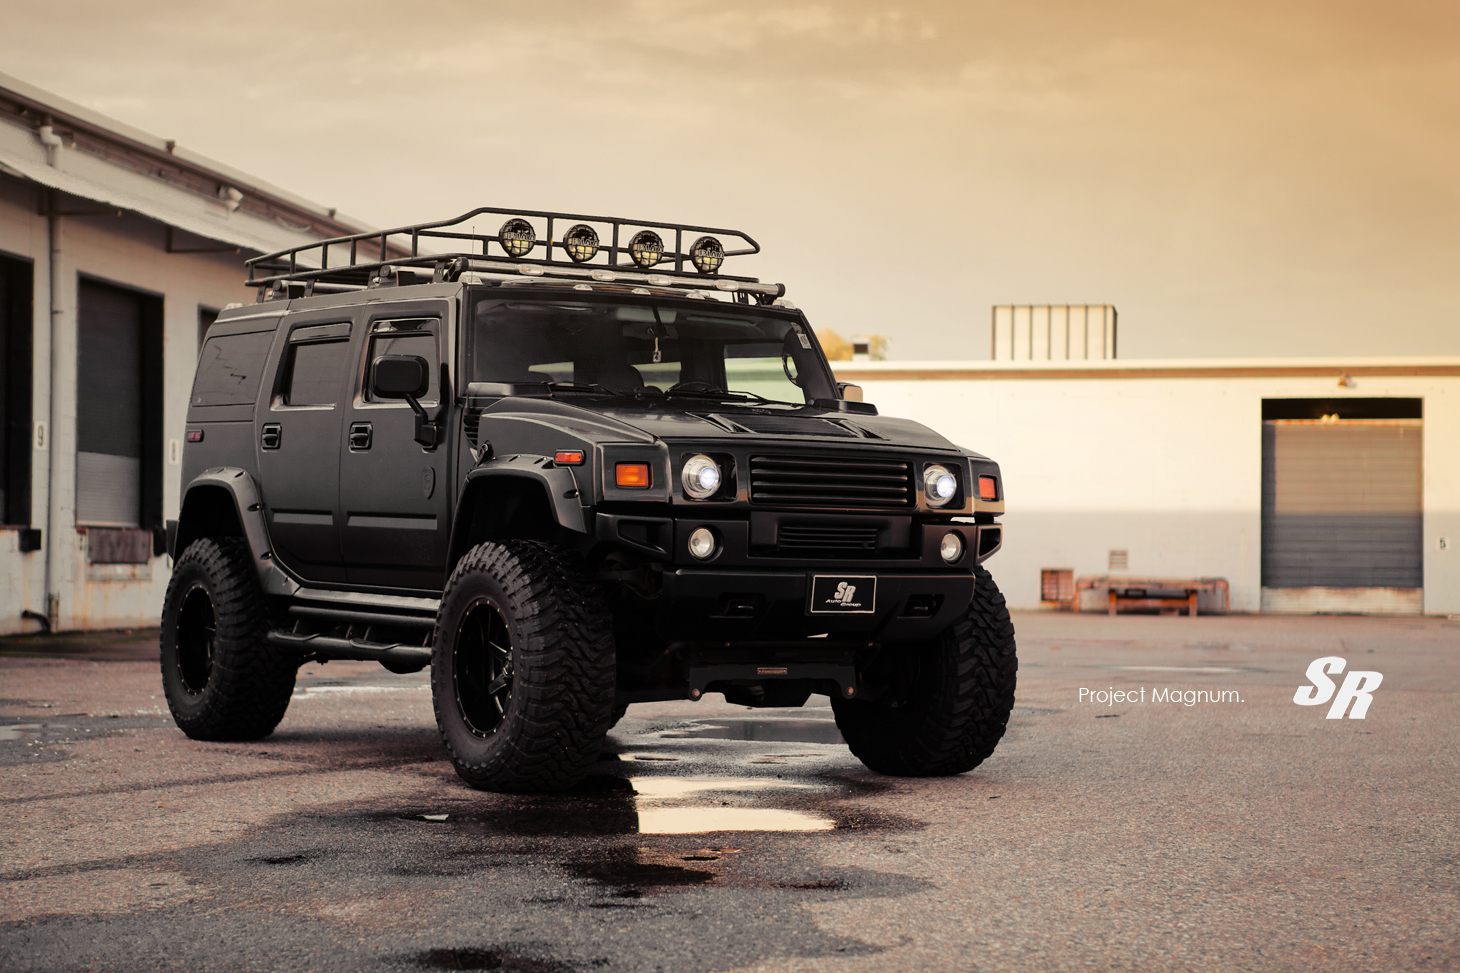 2012 sr auto hummer offroad 4x4 tuning w wallpaper 1460x973 82356 wallpaperup. Black Bedroom Furniture Sets. Home Design Ideas